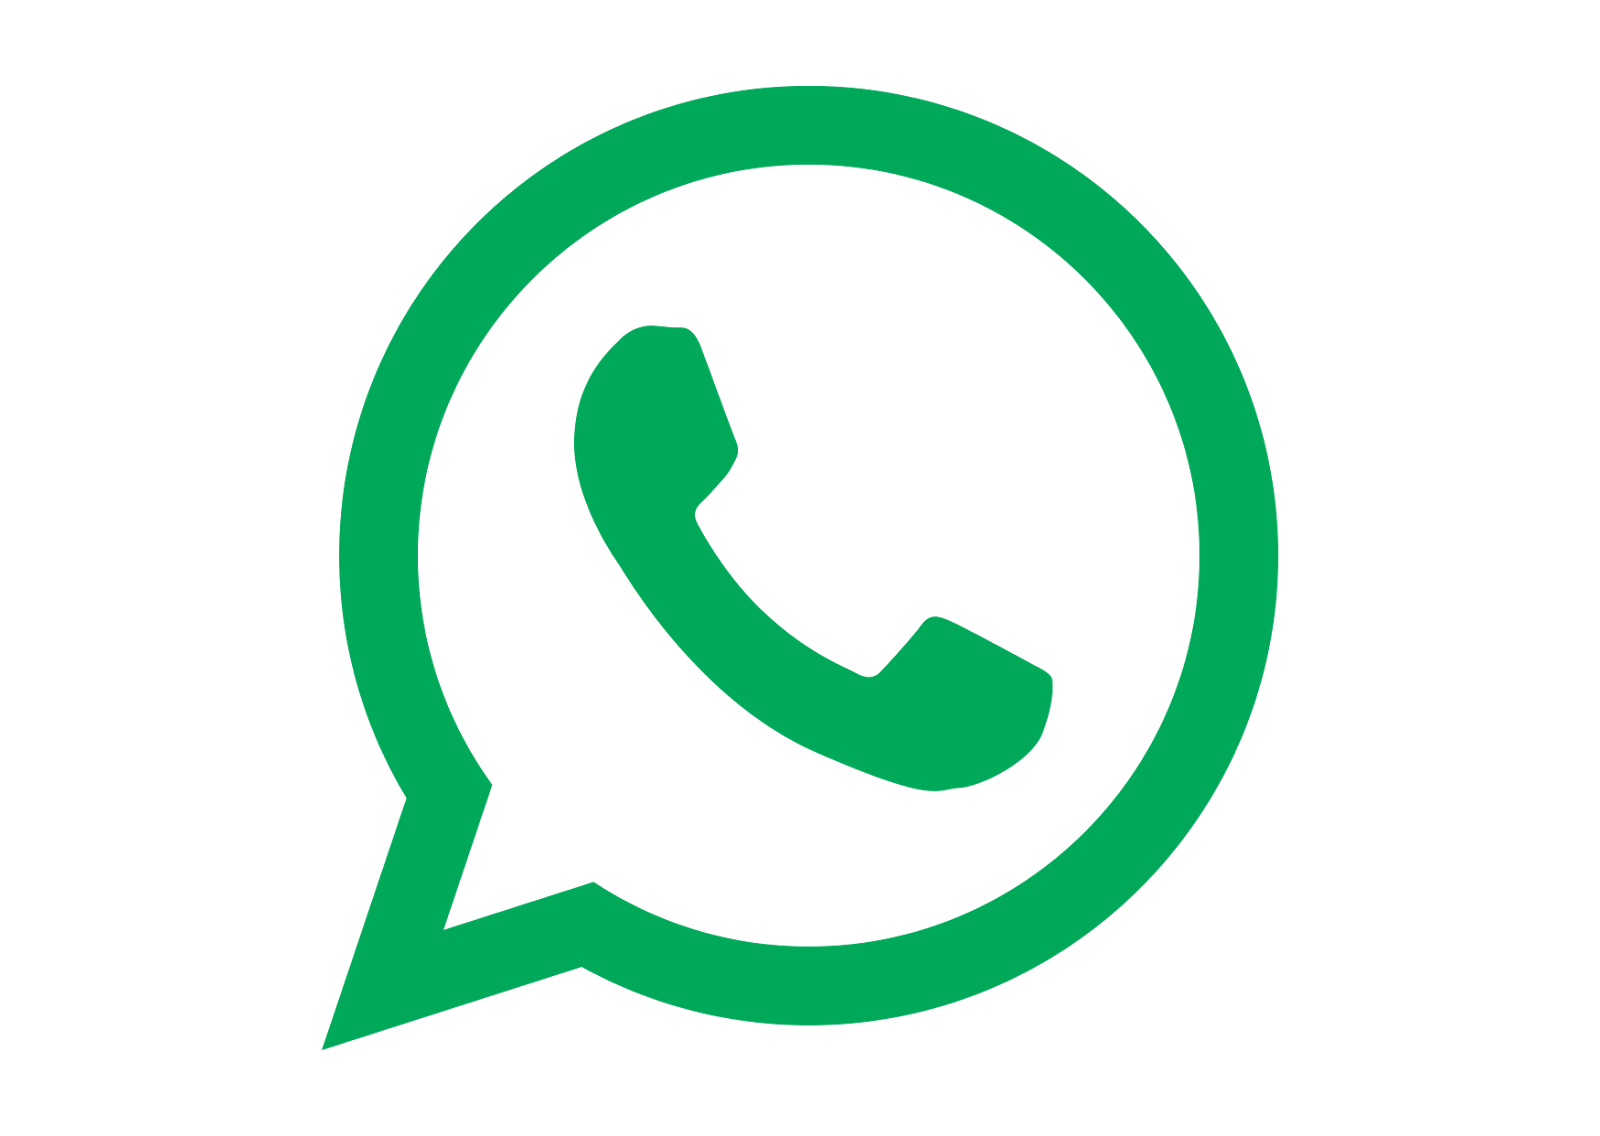 Download Free Png Whatsapp Logo Png Images Free Download | By Pluspng.com  - Whatsapp Logo PNG